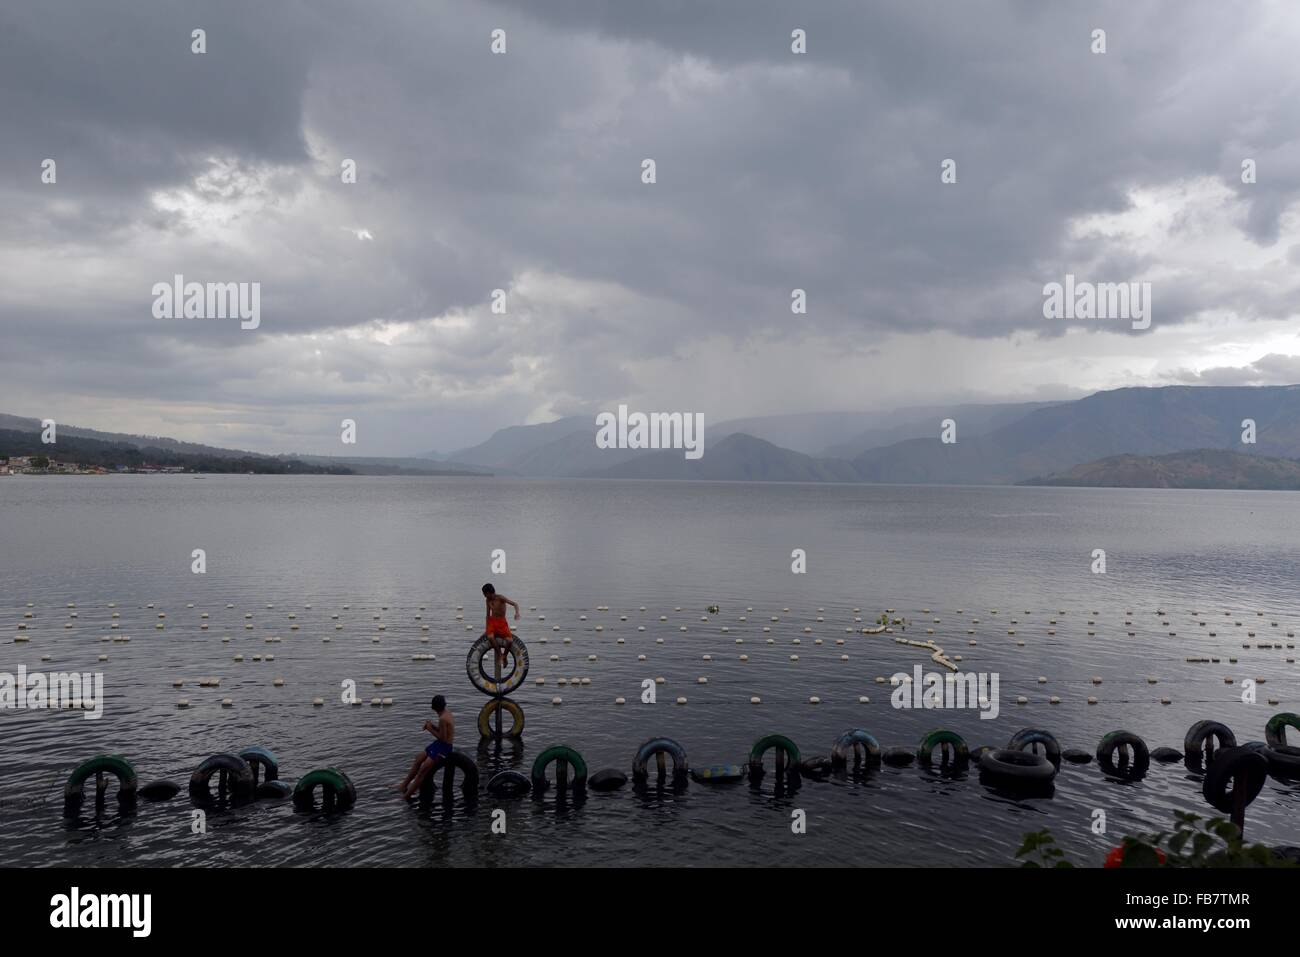 Lake Toba Stock Photos & Lake Toba Stock Images - Page 2 - Alamy